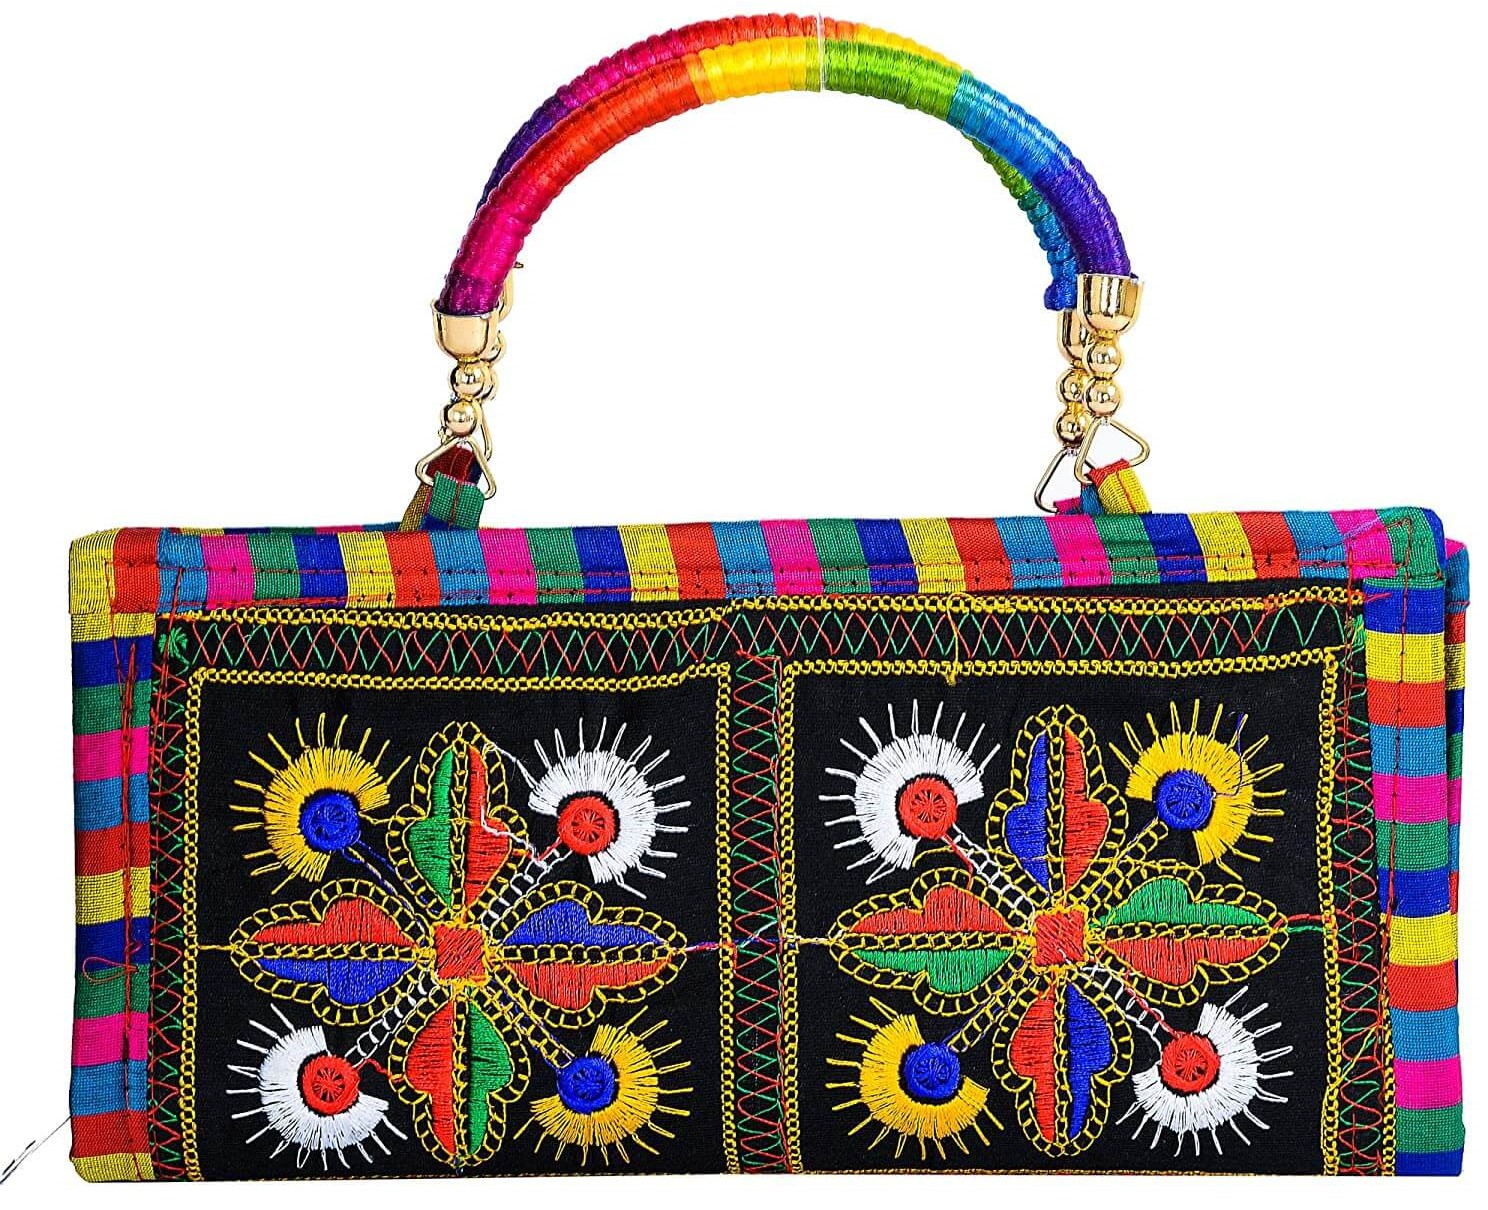 Rajasthani Clutch bag is a little handy purse with zipper. The rectangular shaped clutch has fancy embroidery on both sides.